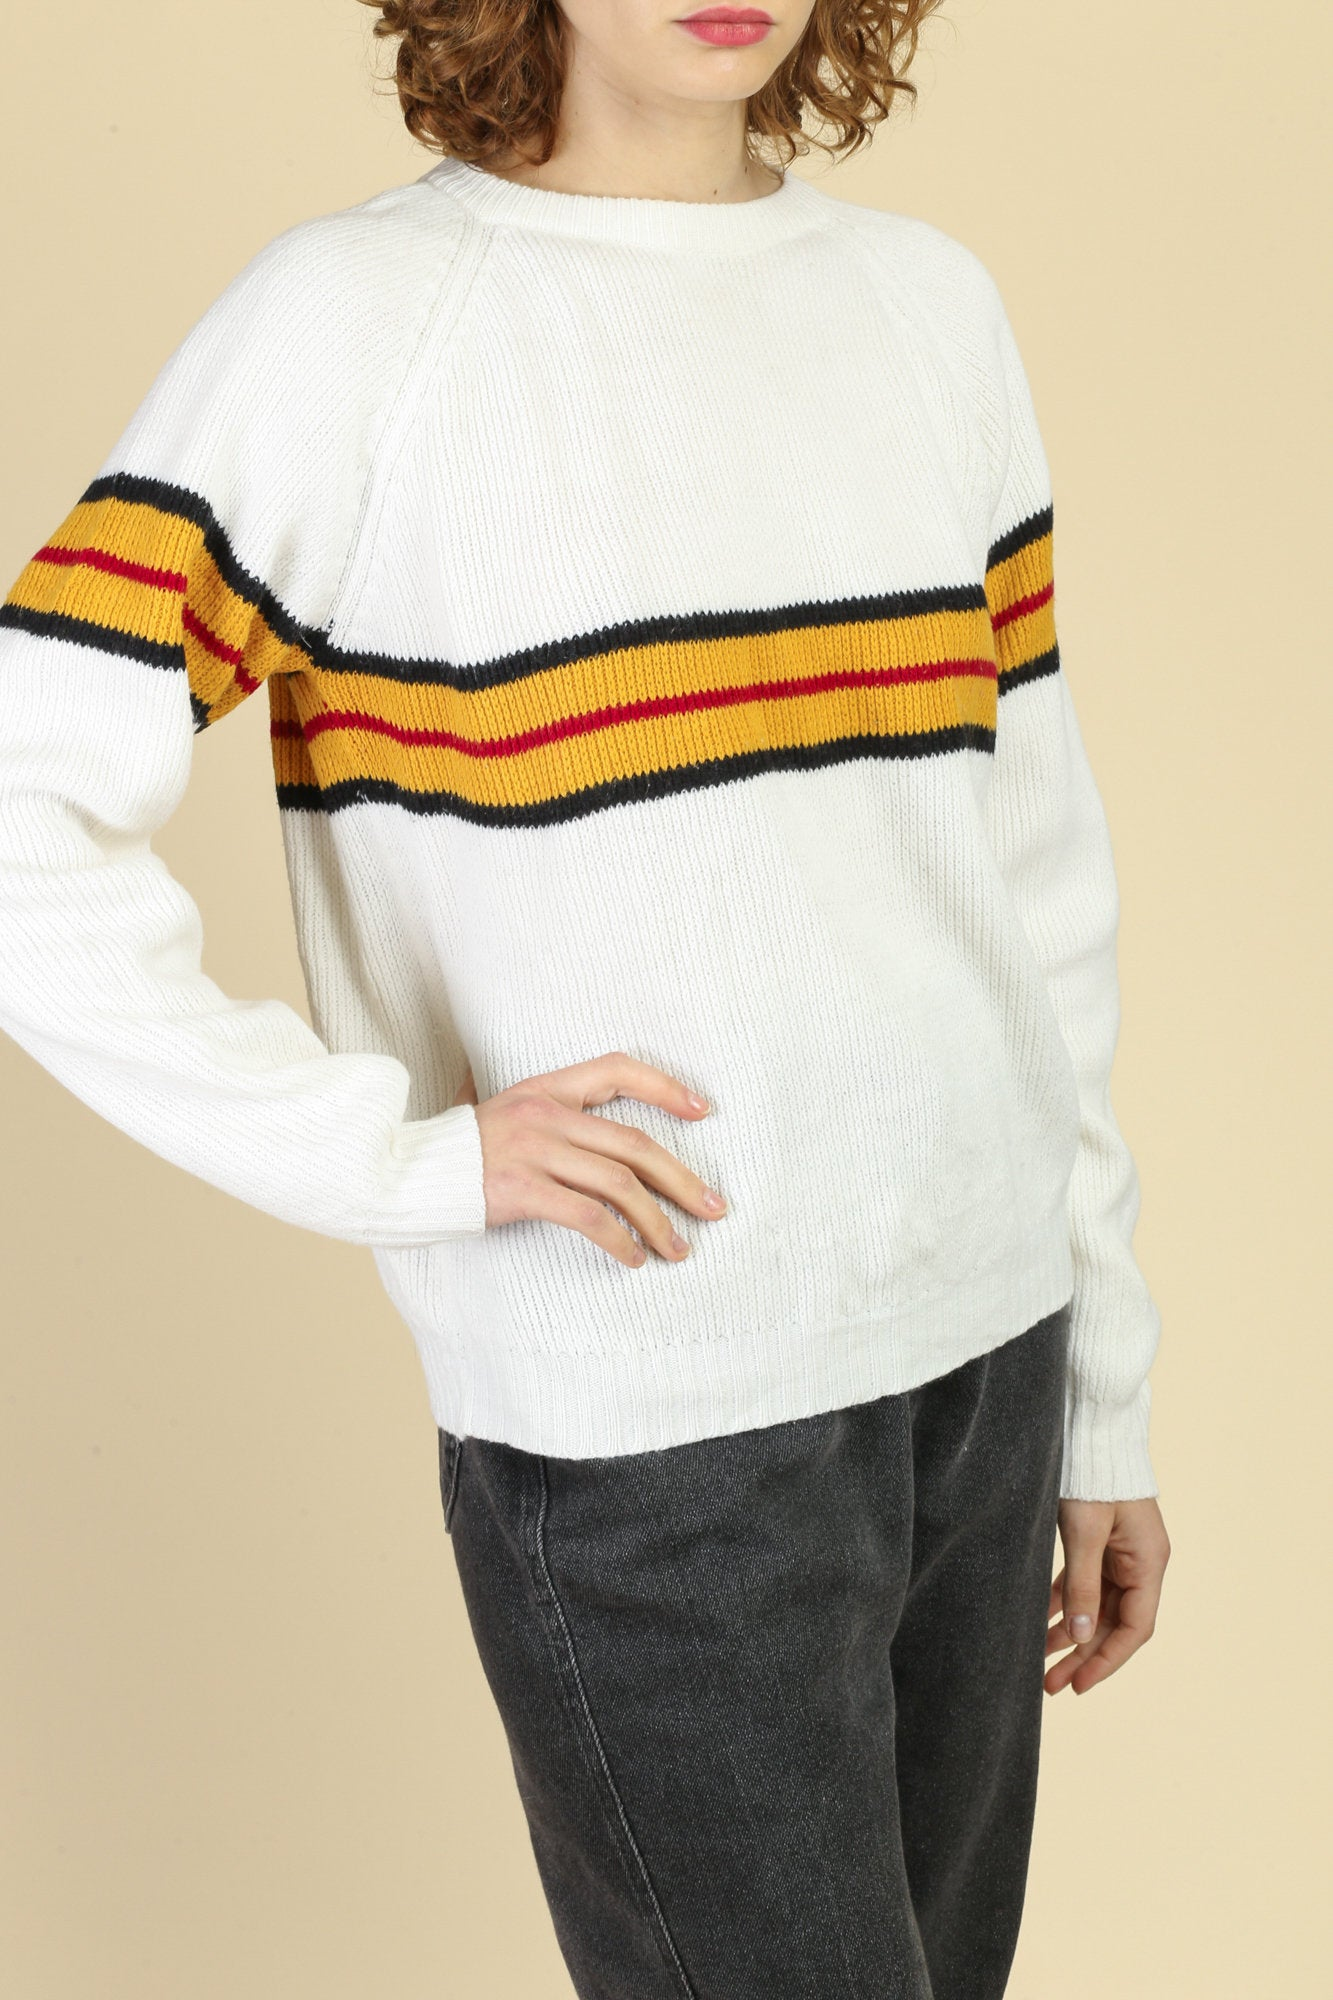 80s White Striped Sweater - Medium